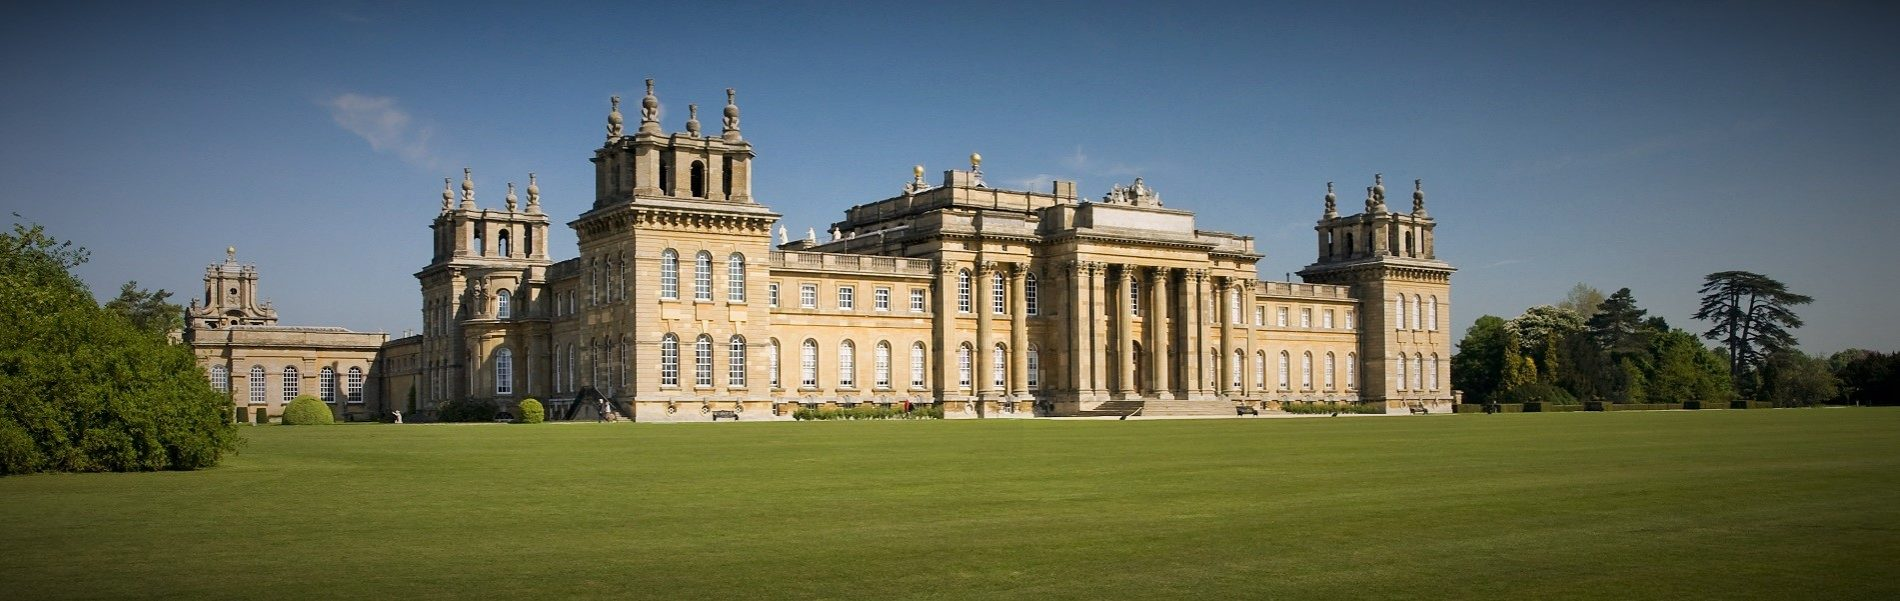 Castle Tours - Blenheim Palace